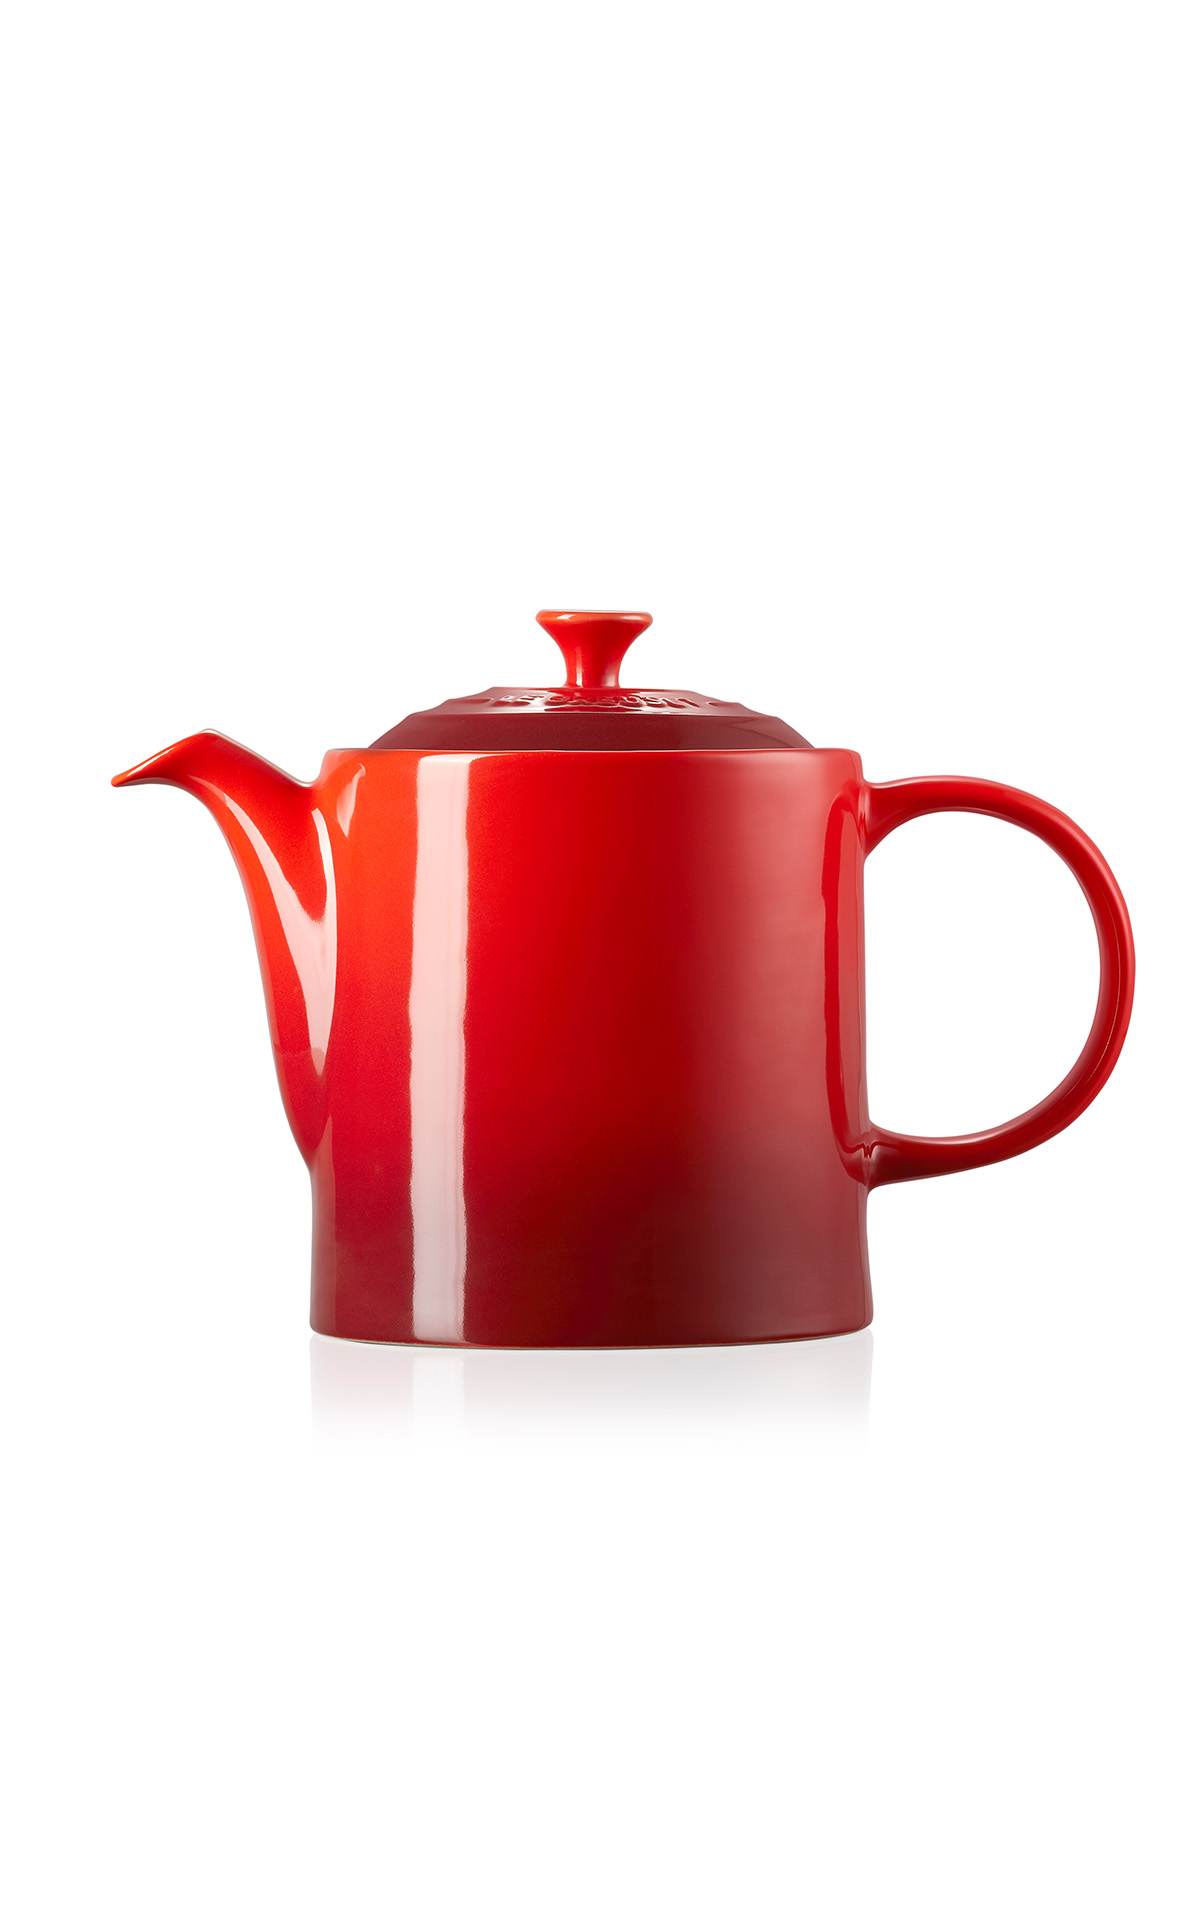 Le Creuset Grand teapot cerise from Bicester Village